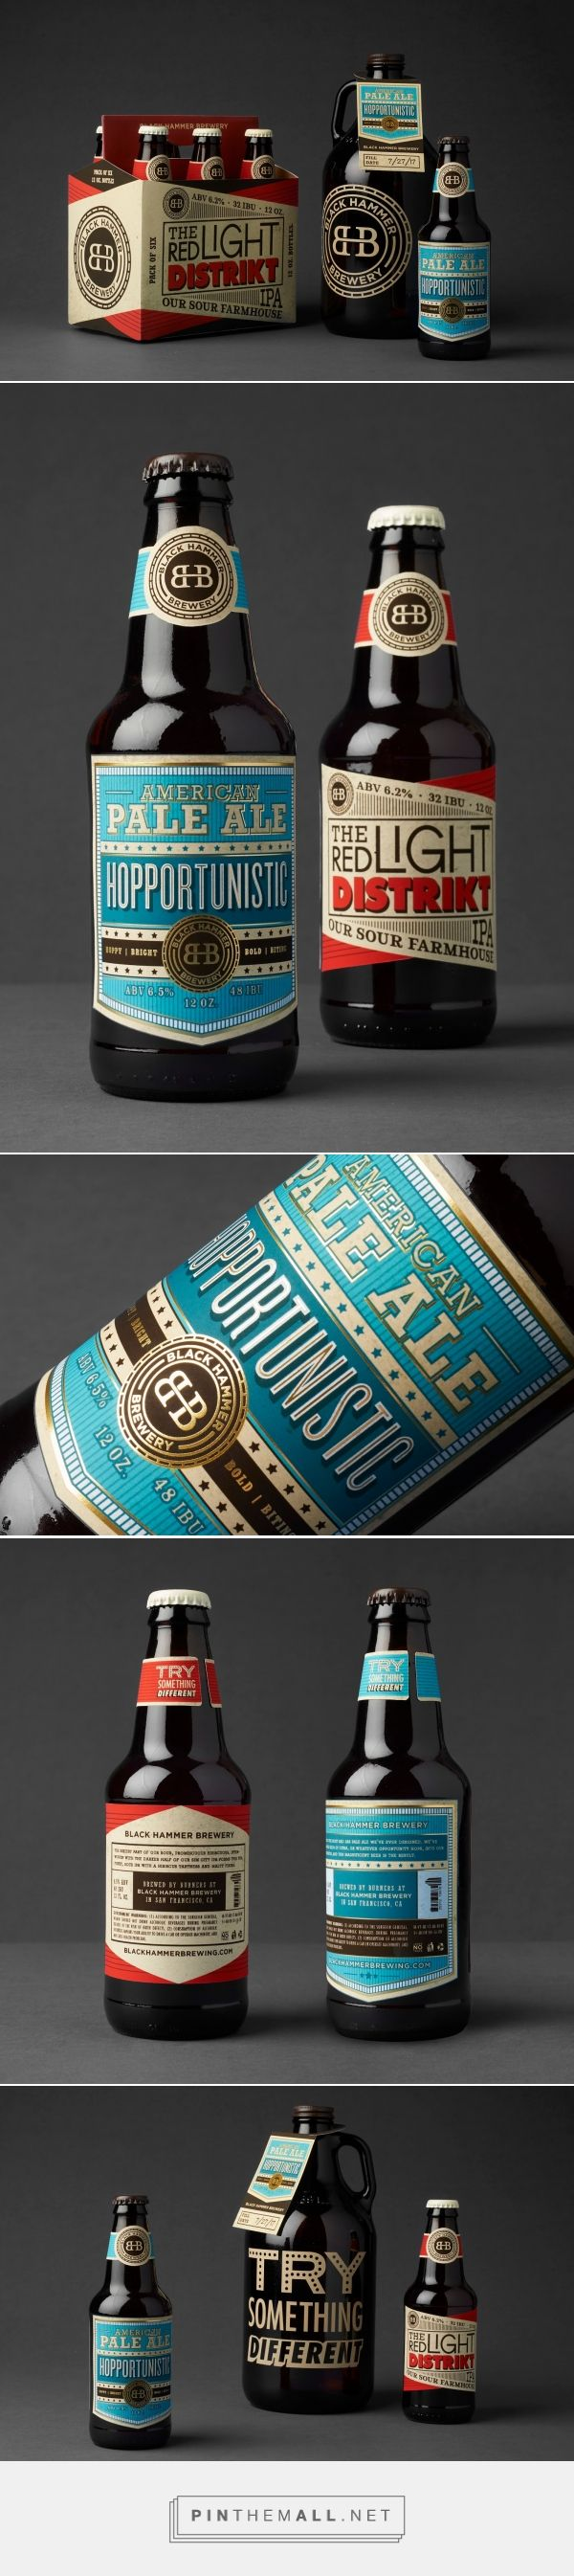 Black Hammer Brewery (student project) packaging design by Celina Oh - https://www.packagingoftheworld.com/2018/04/black-hammer-brewery.html